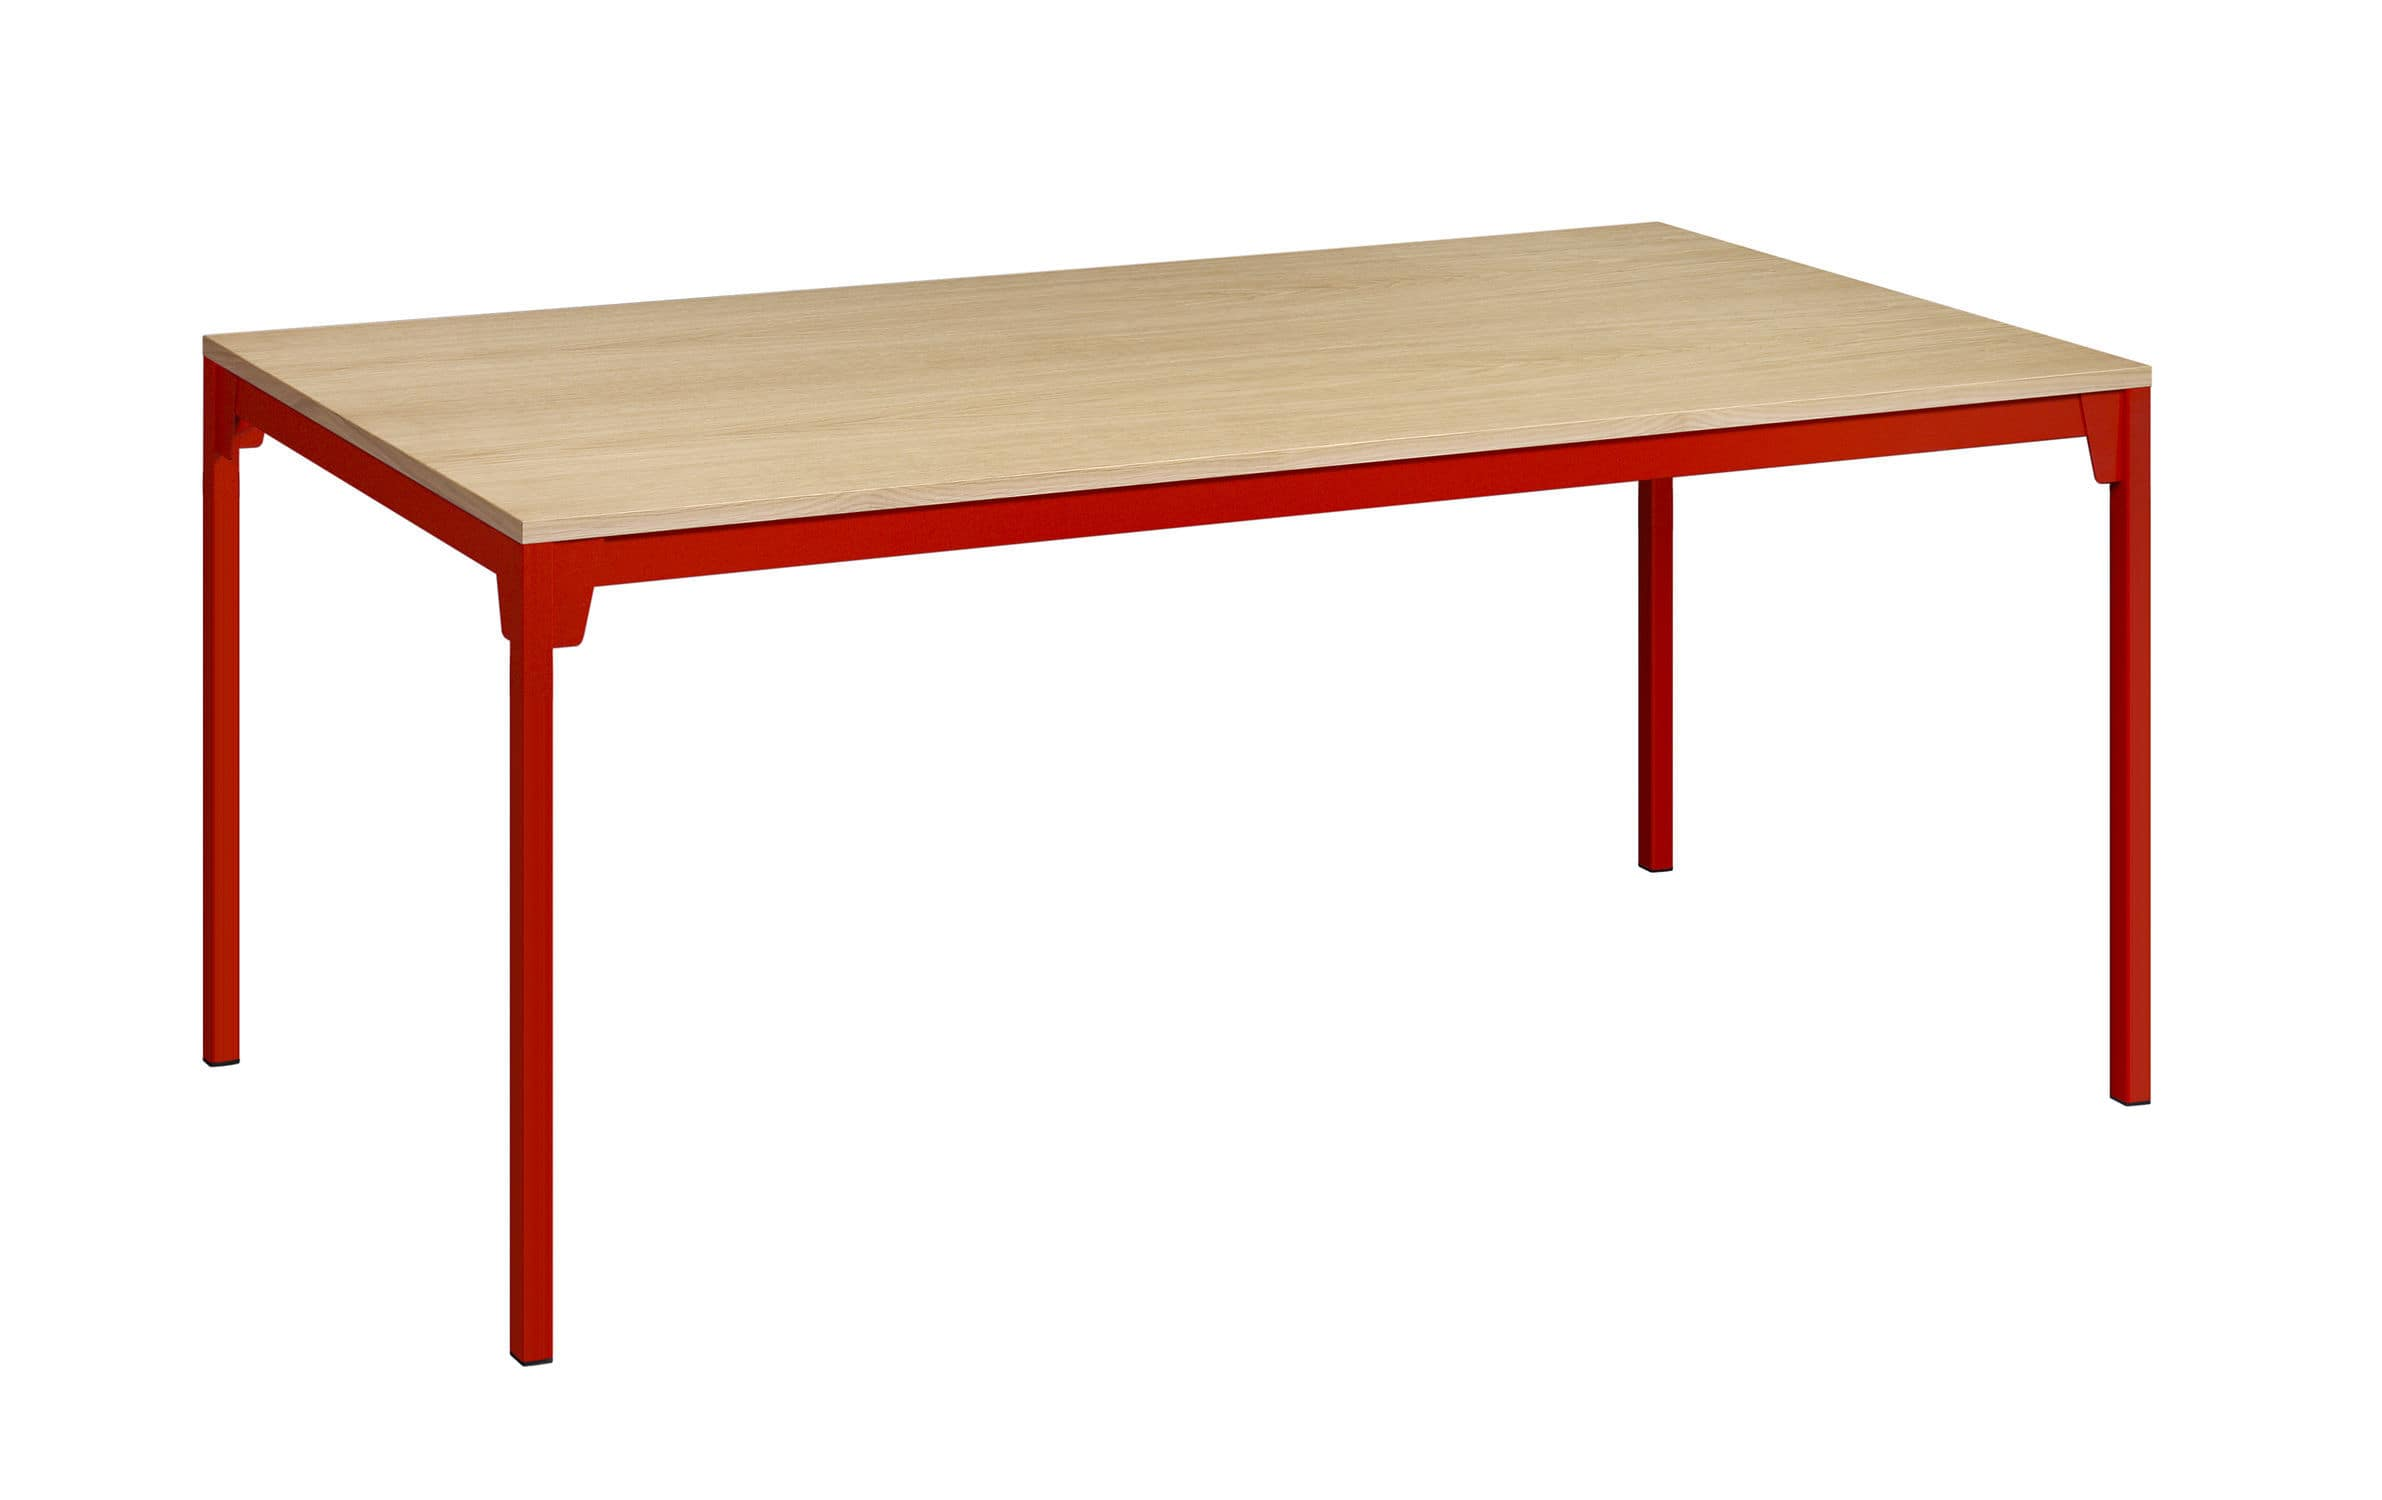 Ferdinand Kramer contemporary table steel oak lacquered wood fk07 frankfurt